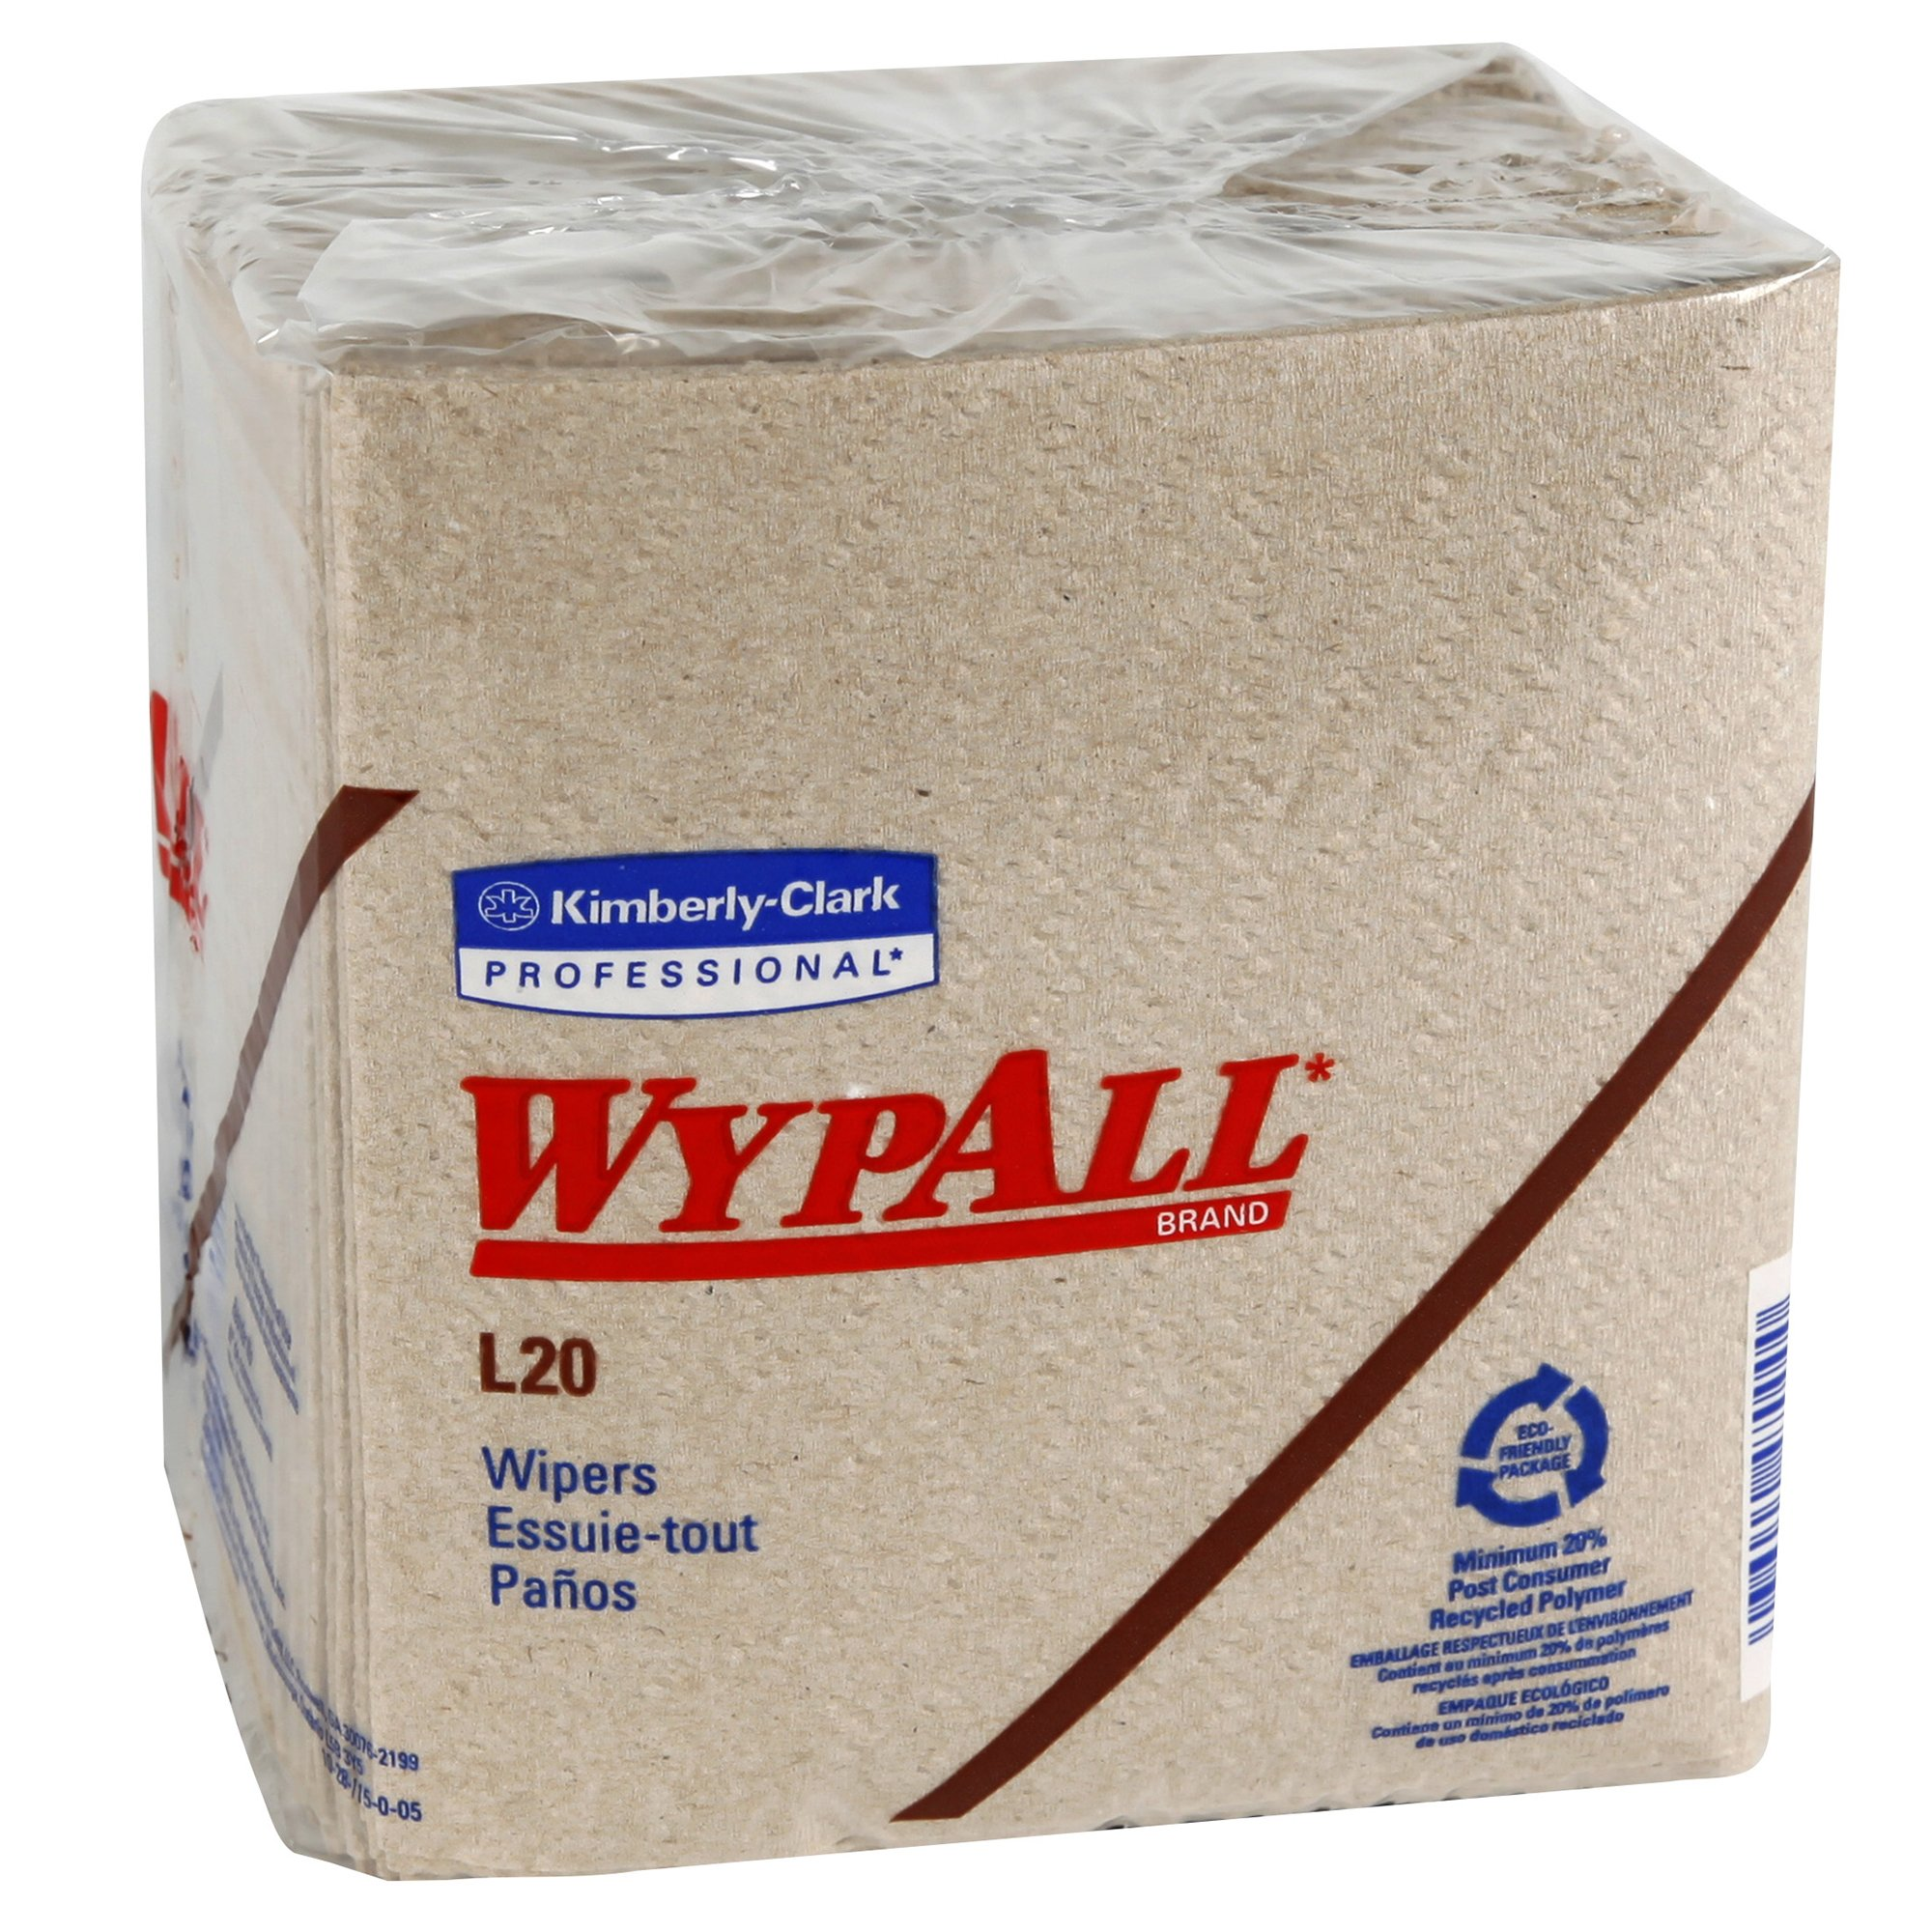 WypAll L20 Limited Use Towels (47000), Quarterfold Format, Tan/Natural, 2-Ply, 12 Packs/Case, 68 Sheets/Pack